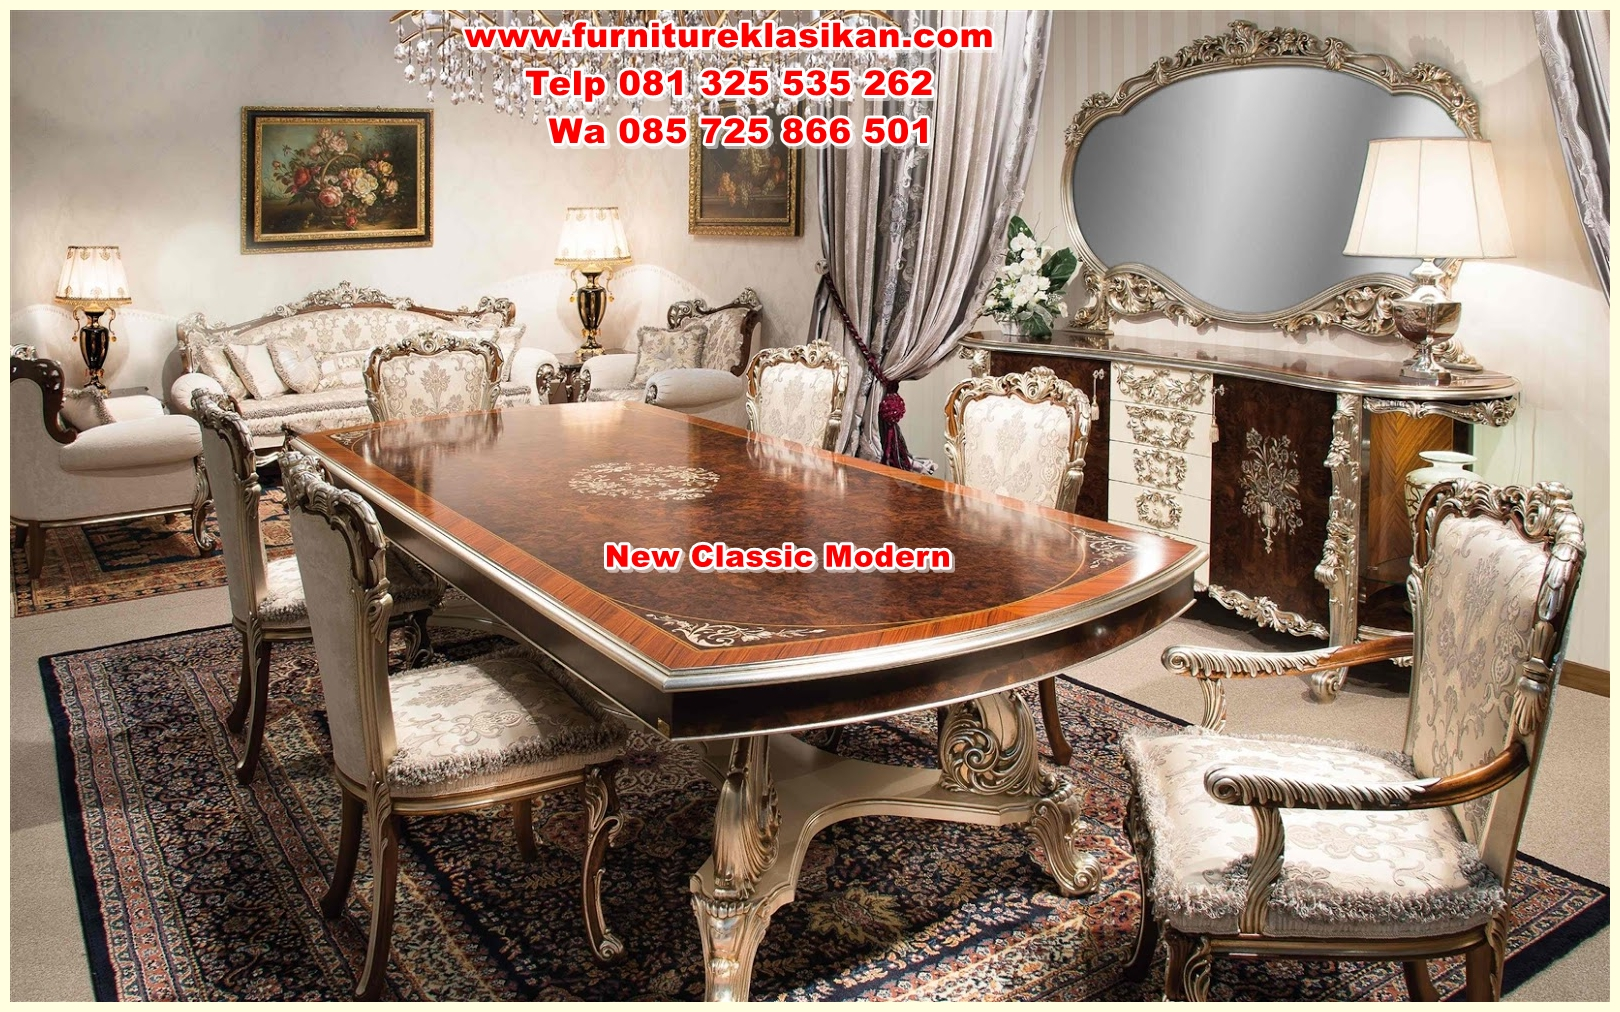 Luxury_dining_room_furniture5 meja makan veneer klasik terbaru